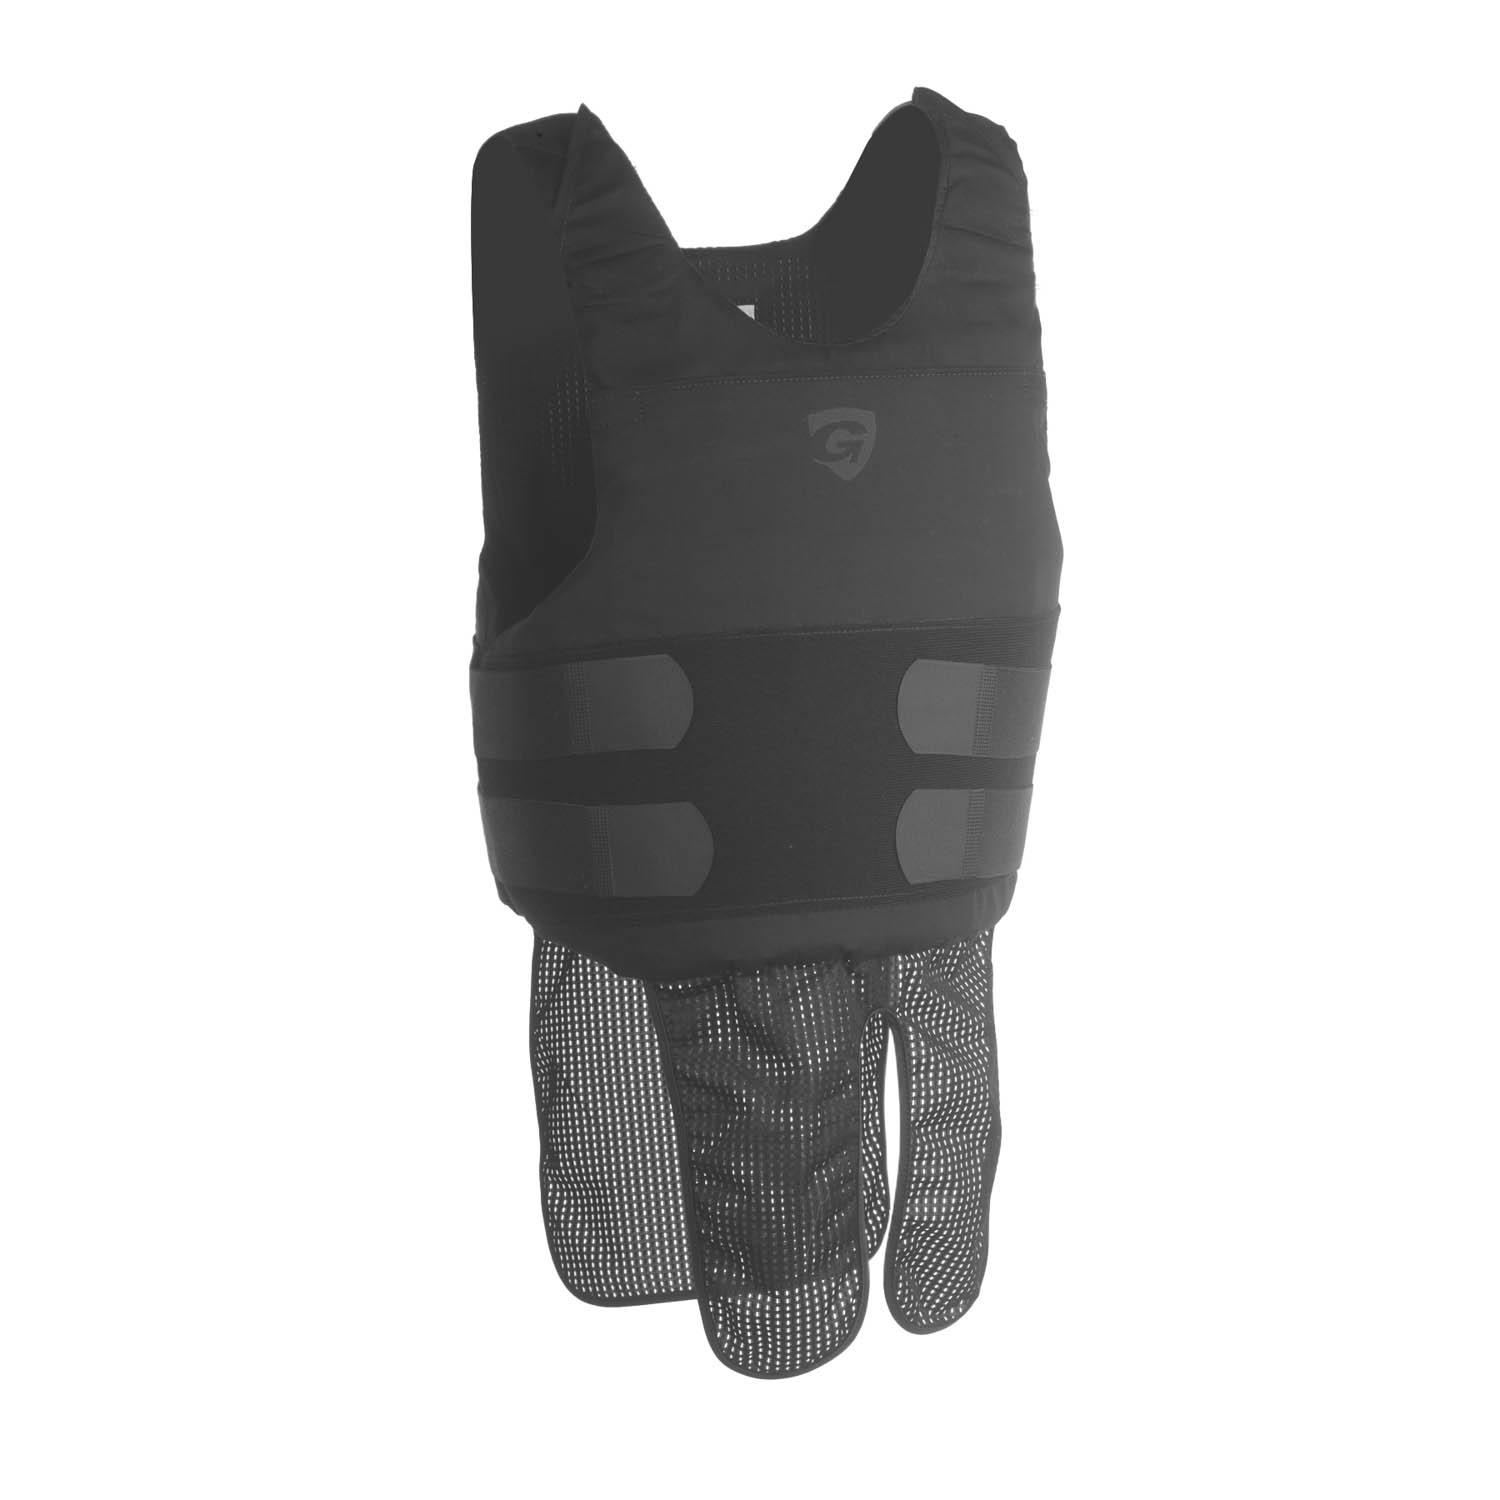 Galls SE Series IIIA Body Armor NIJ Number LXIIIA